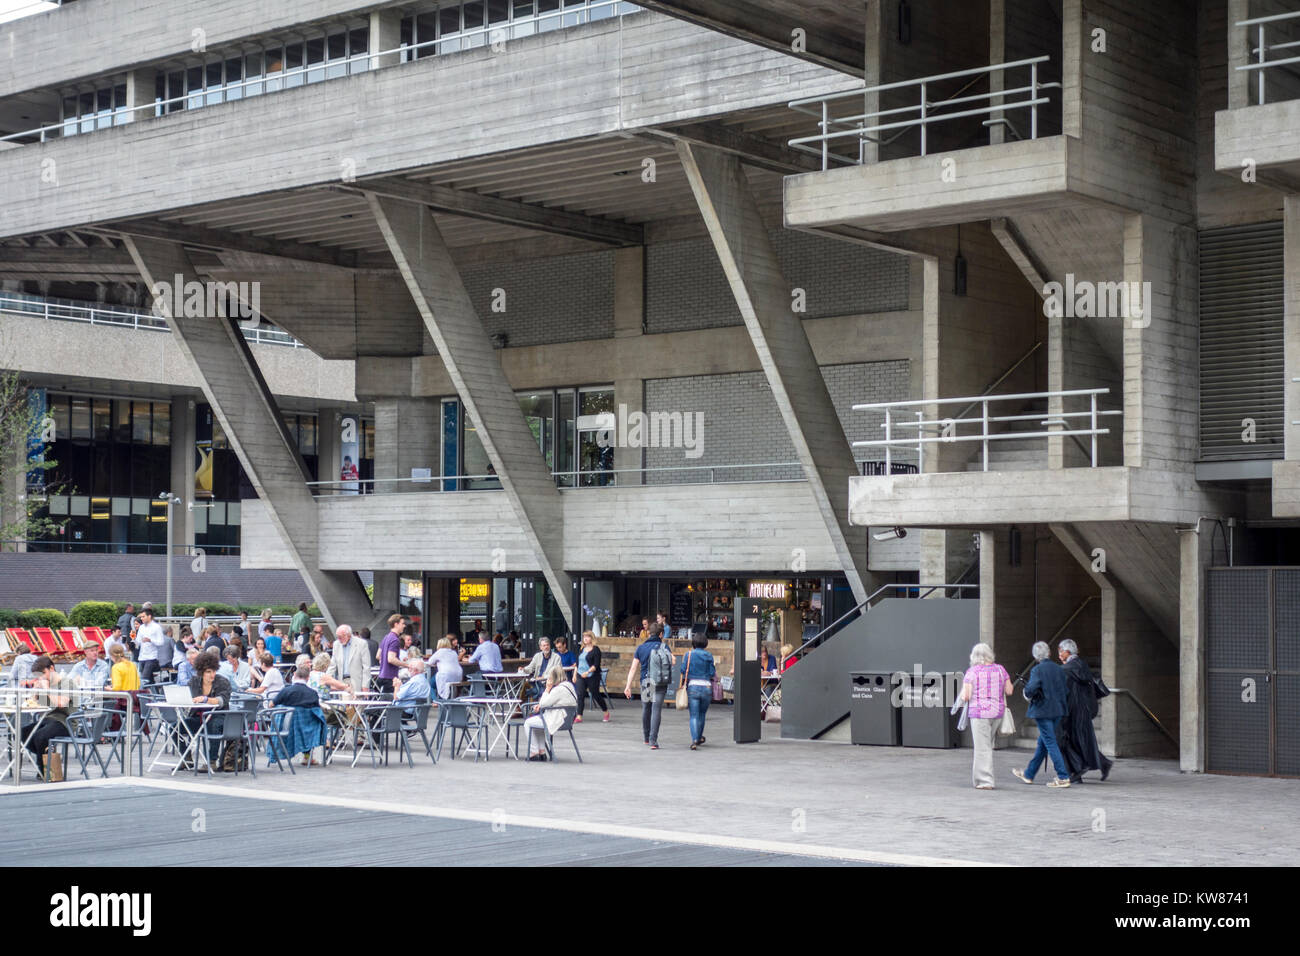 People sat outside the brutalist architecture of the National Theatre on London's South Bank, London, UK - Stock Image